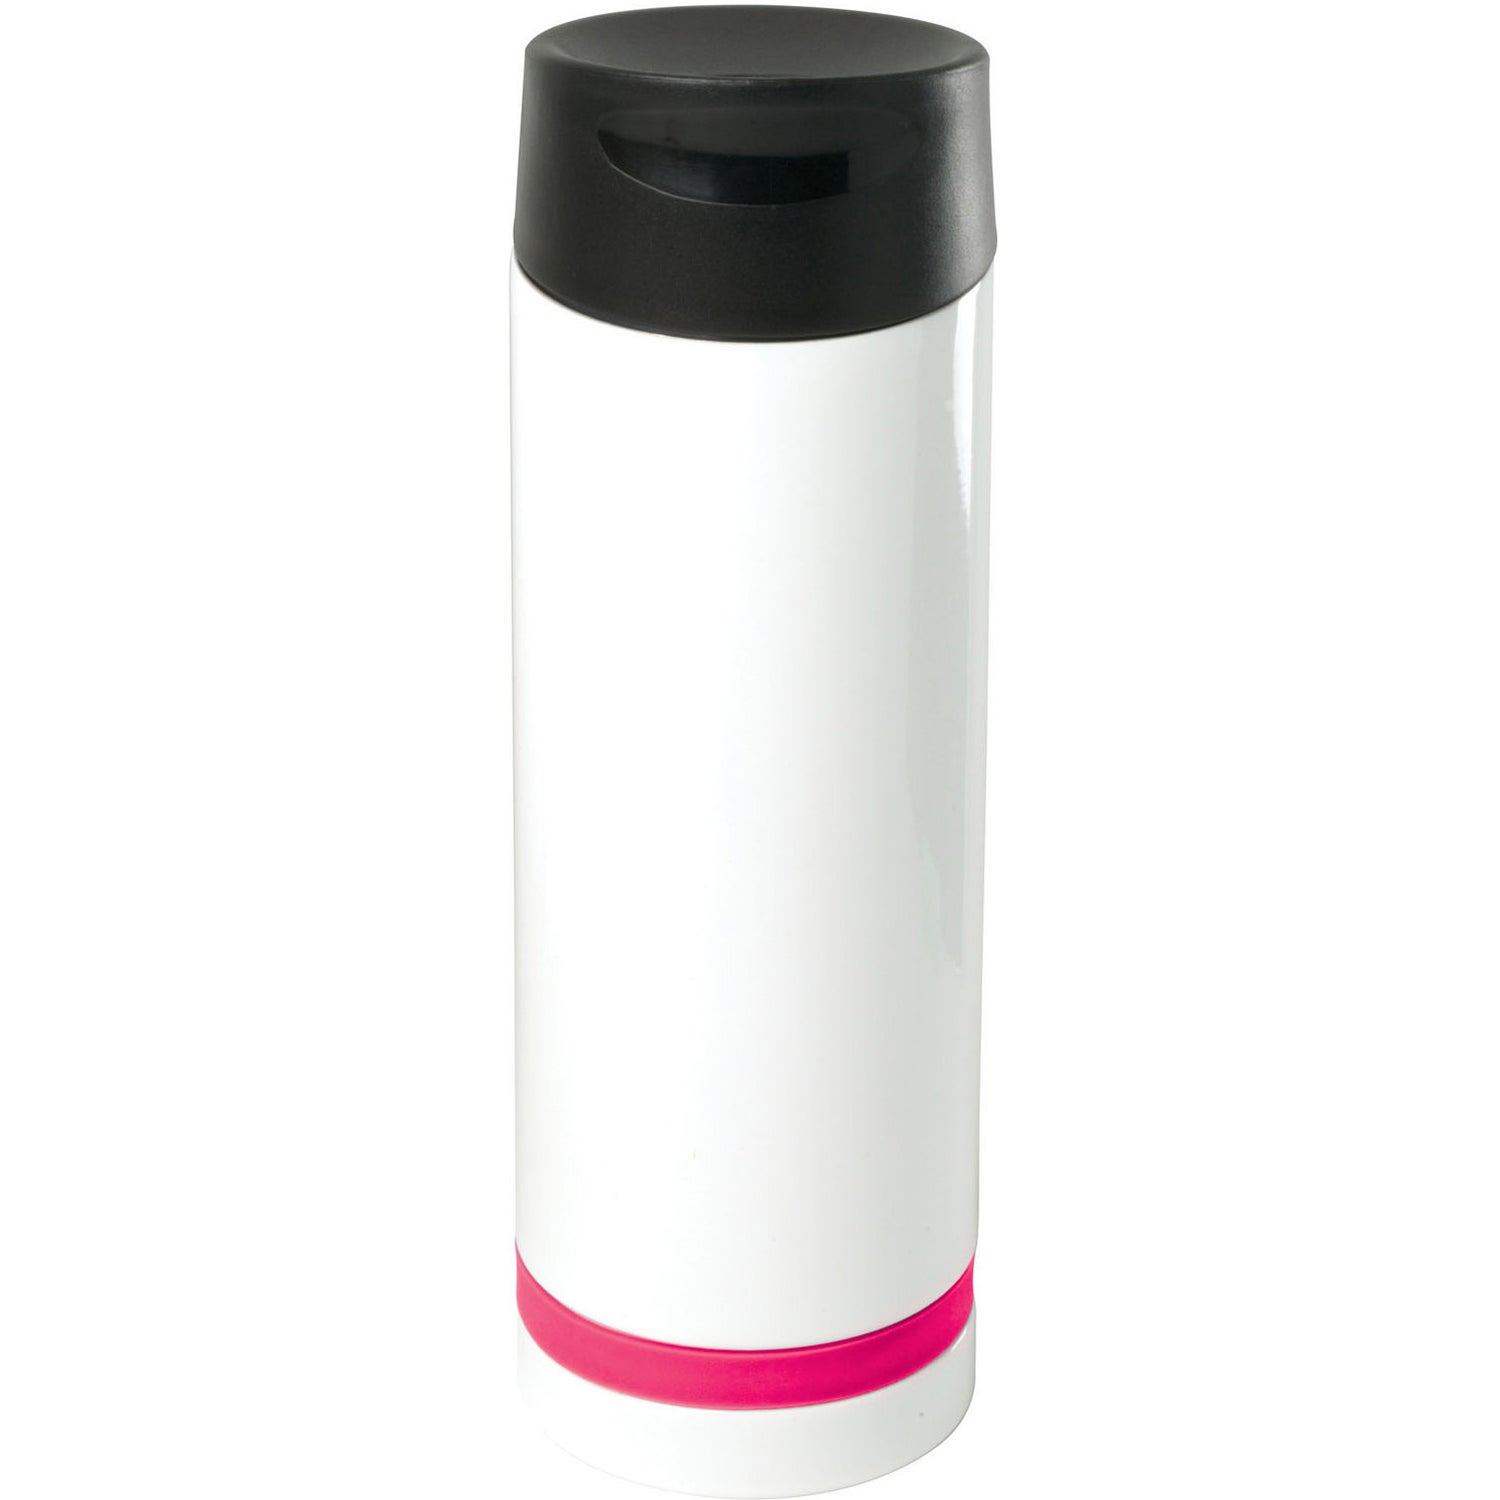 2c76359959a CLICK HERE to Order 16 Oz. Persona Silo Vacuum Tumblers Printed with Your  Logo for $13.99 Ea.